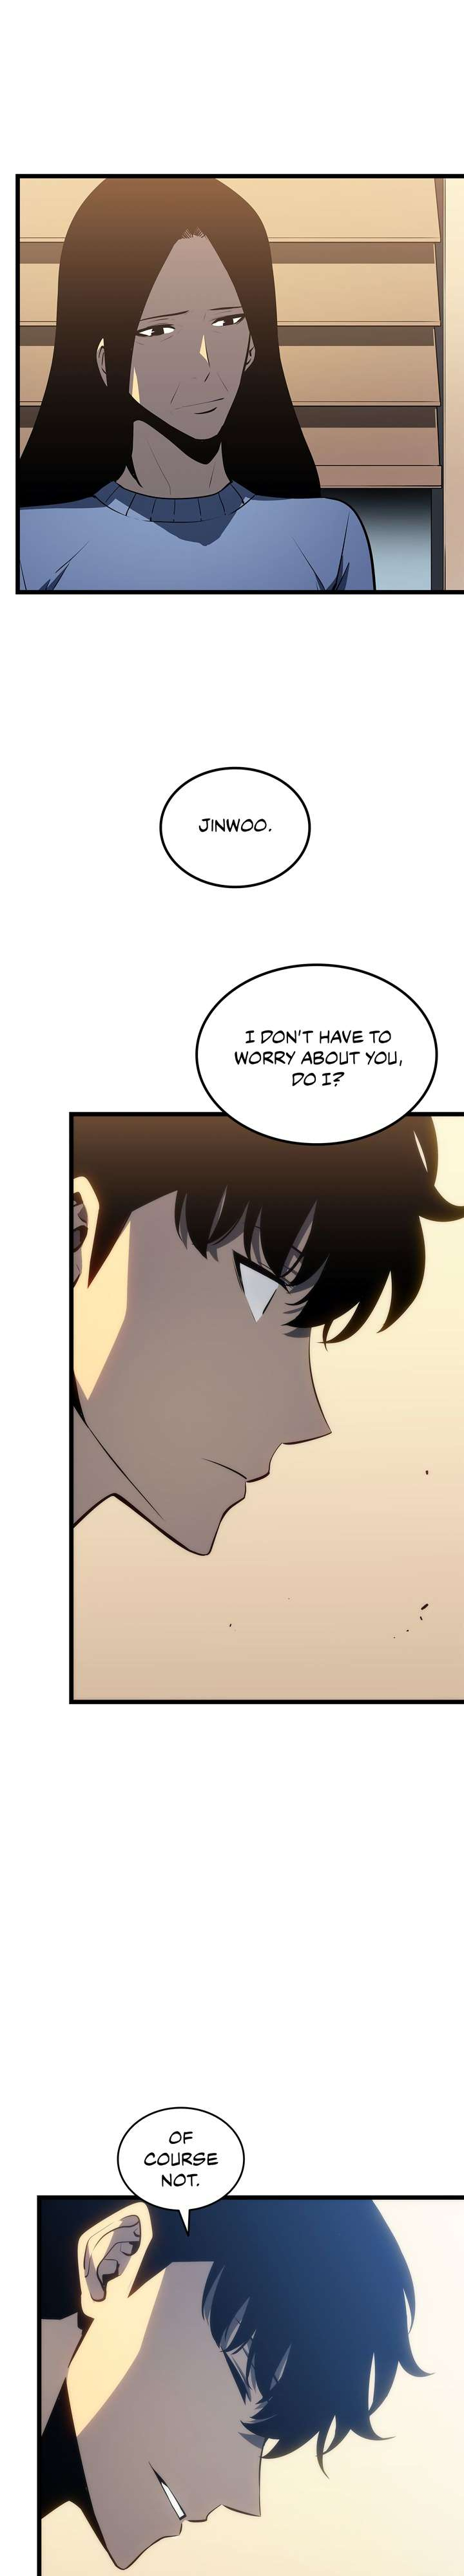 Solo Leveling Chapter 124 Page 11